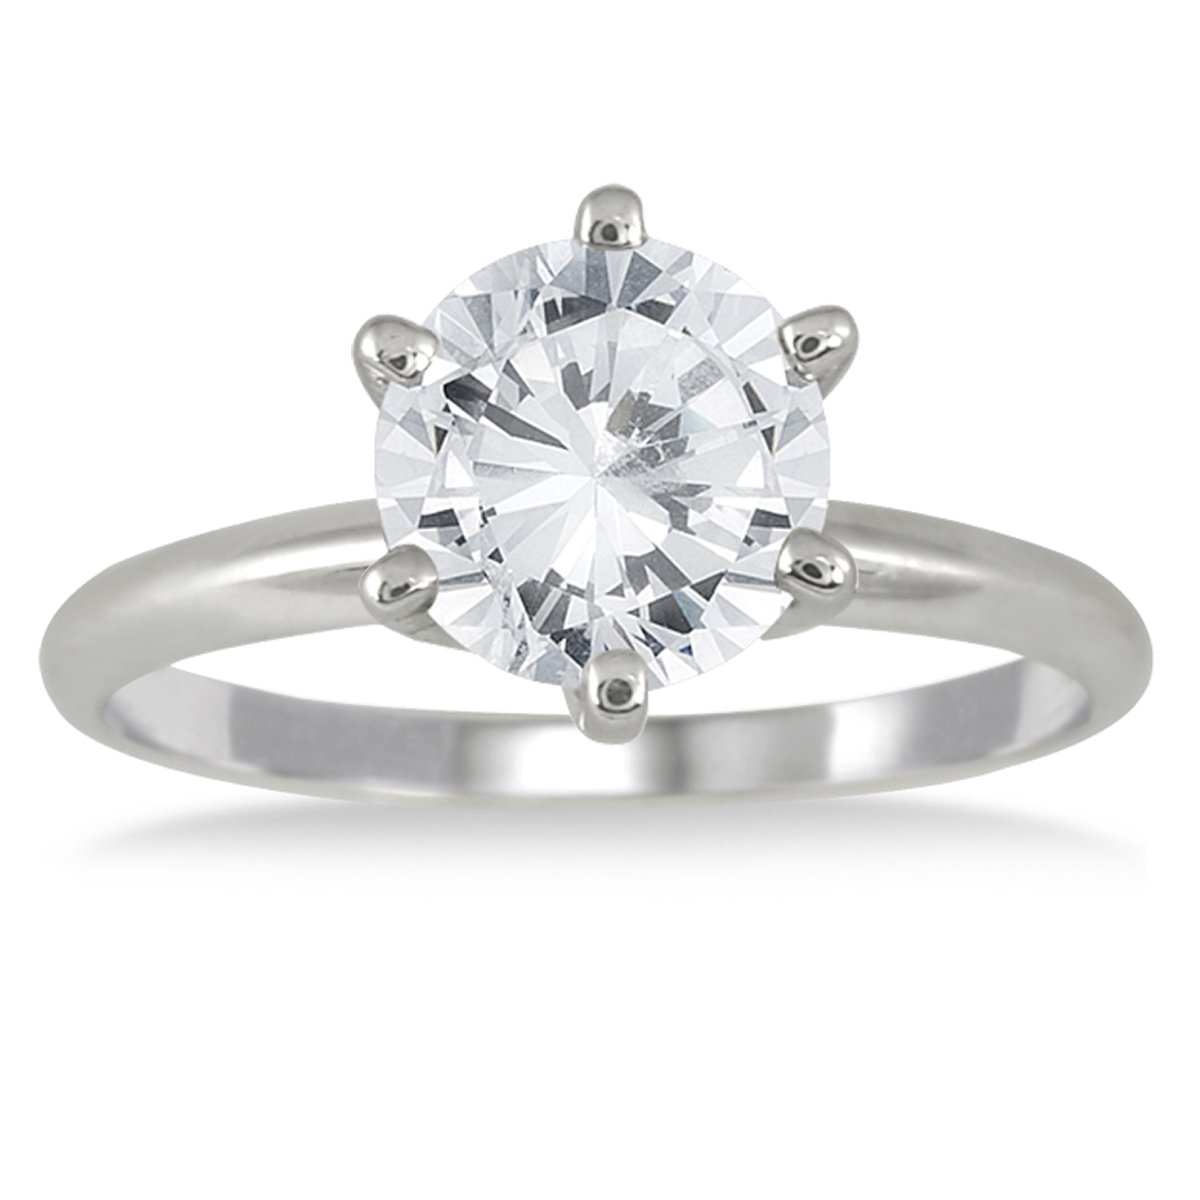 AGS Certified 1 1/2 Carat Diamond Solitaire Ring in 14K White Gold (J-K Color, I2-I3 Clarity)